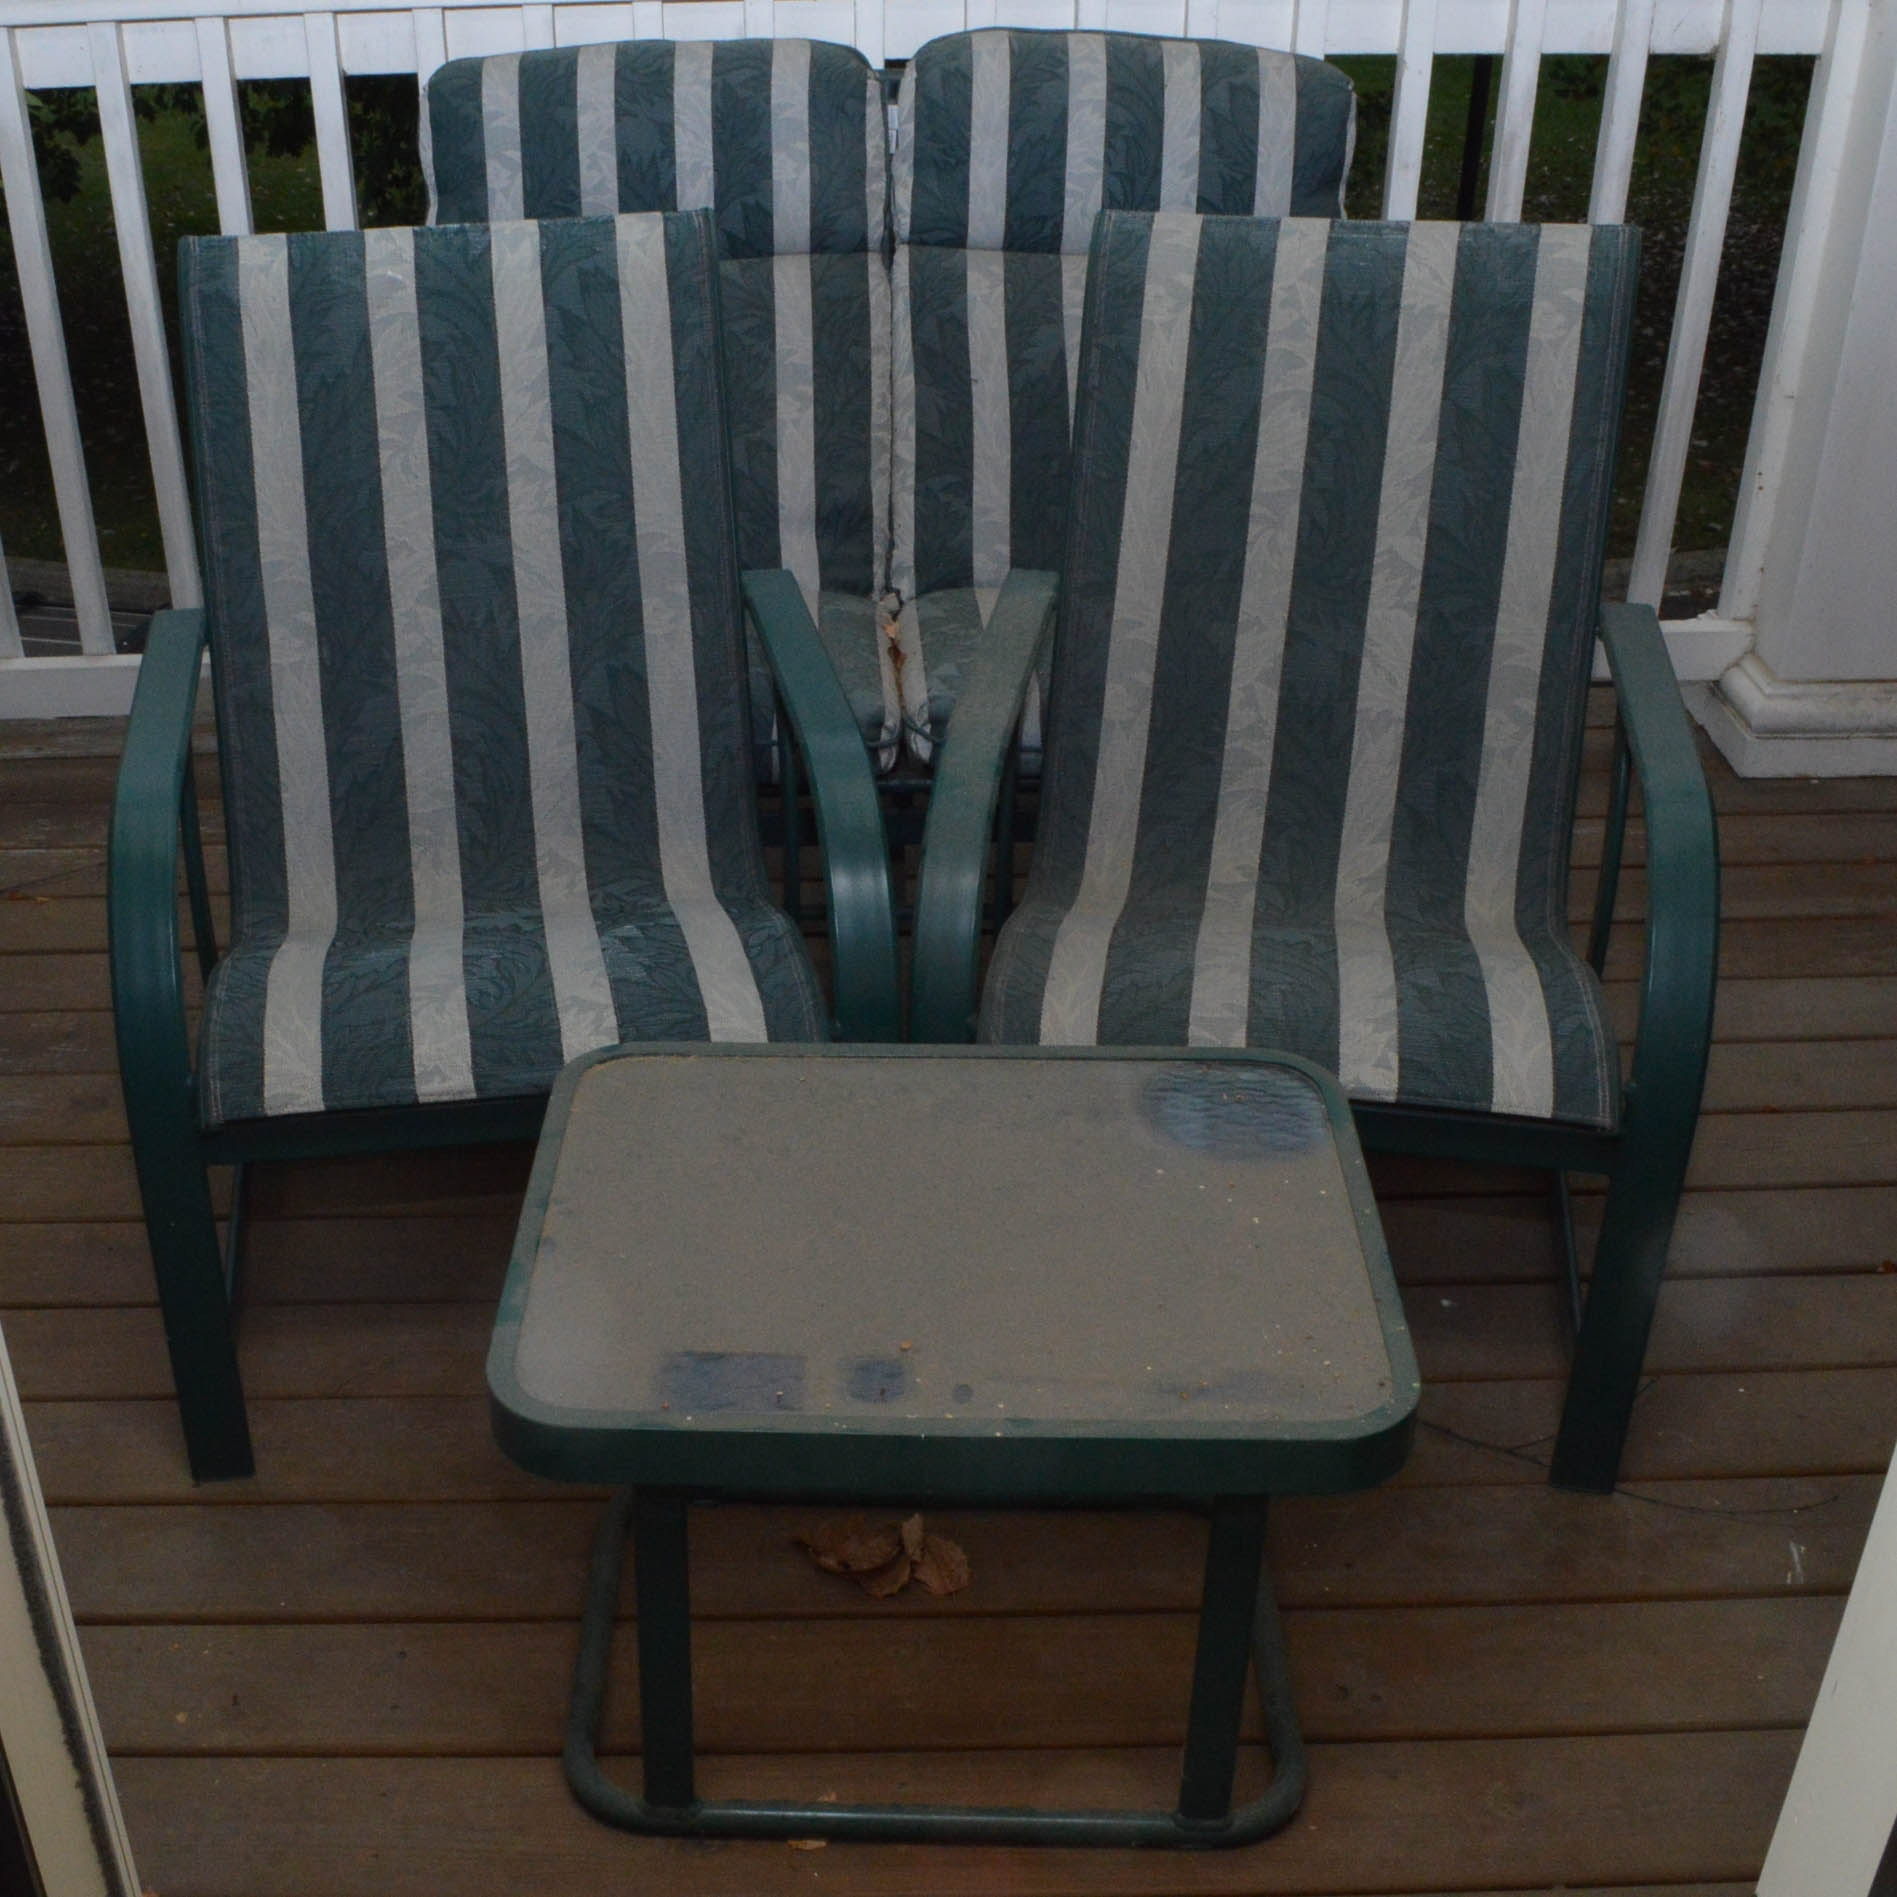 Green Metal Outdoor Furniture Set